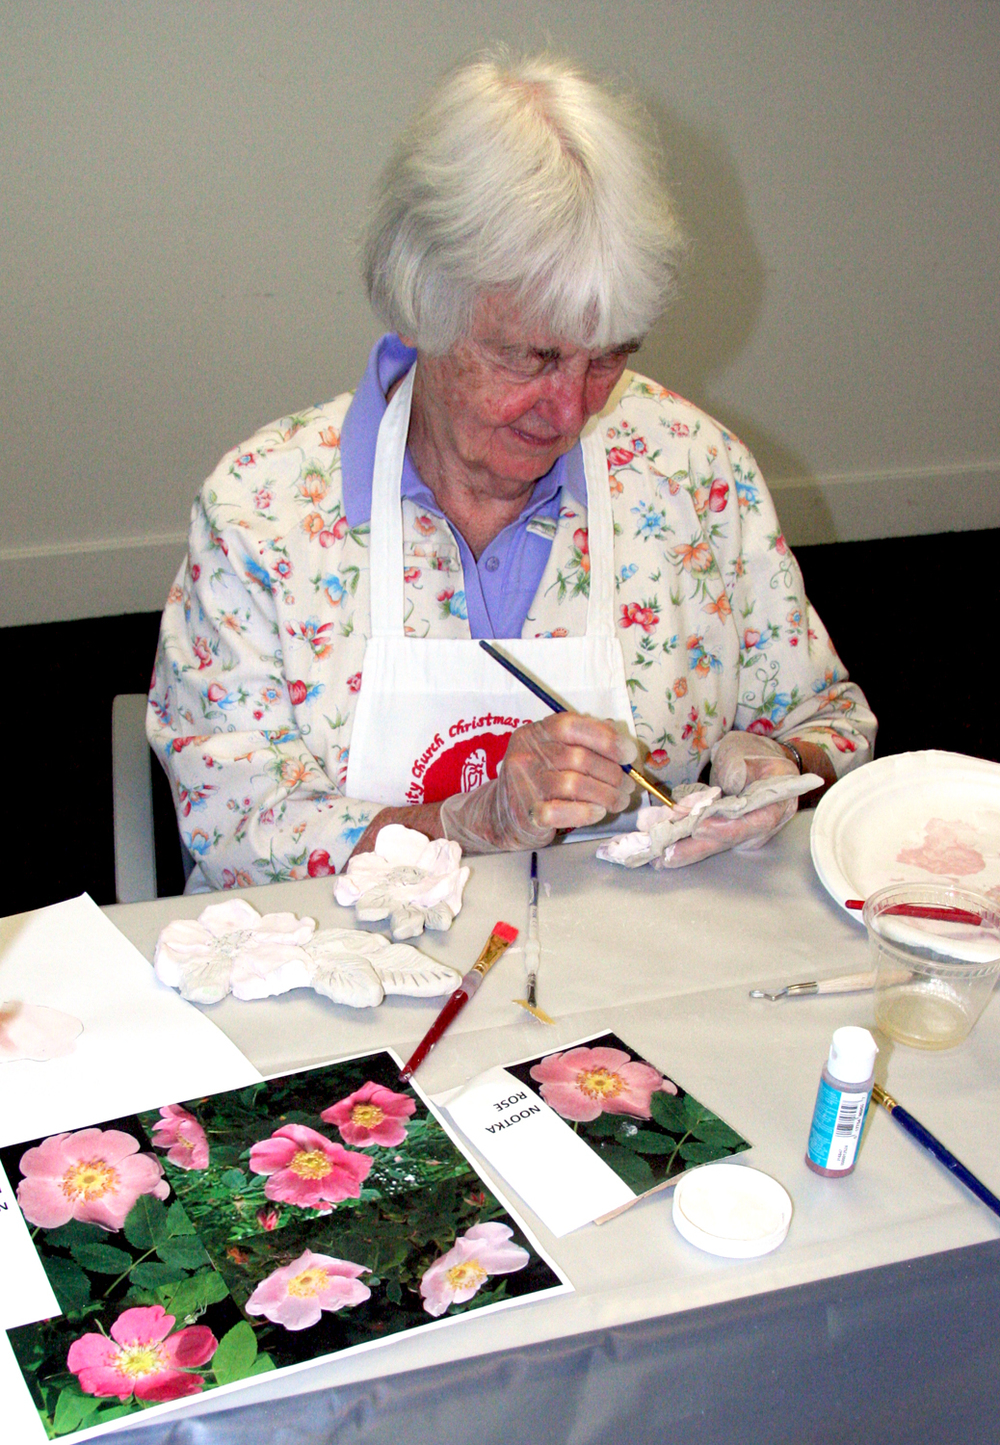 terwilliger plaza with Lynn Takata, painting roses.jpg